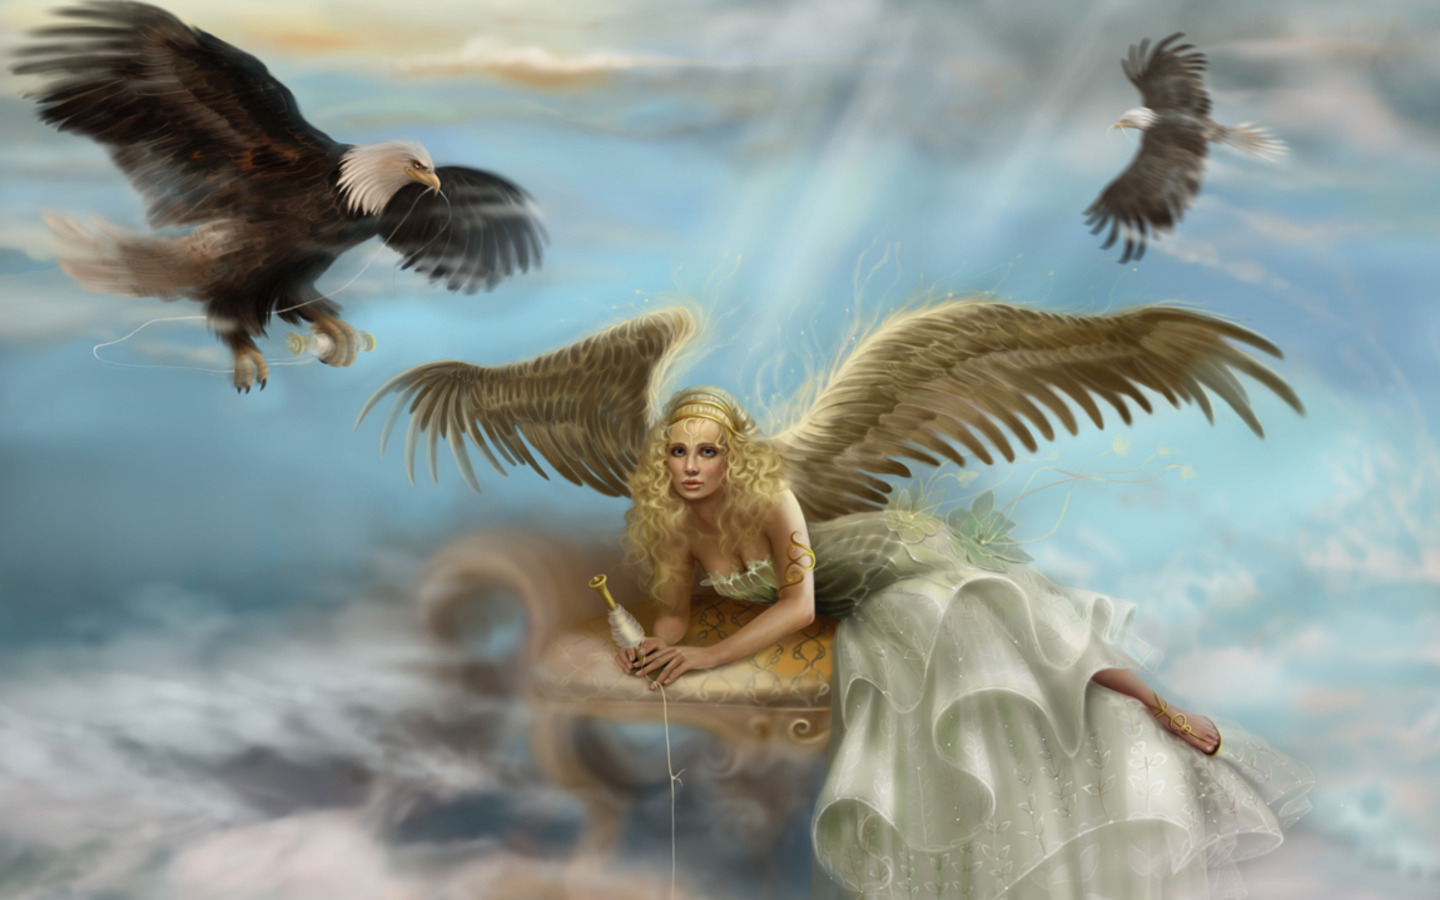 Consider, Beautiful fantasy angels valuable message